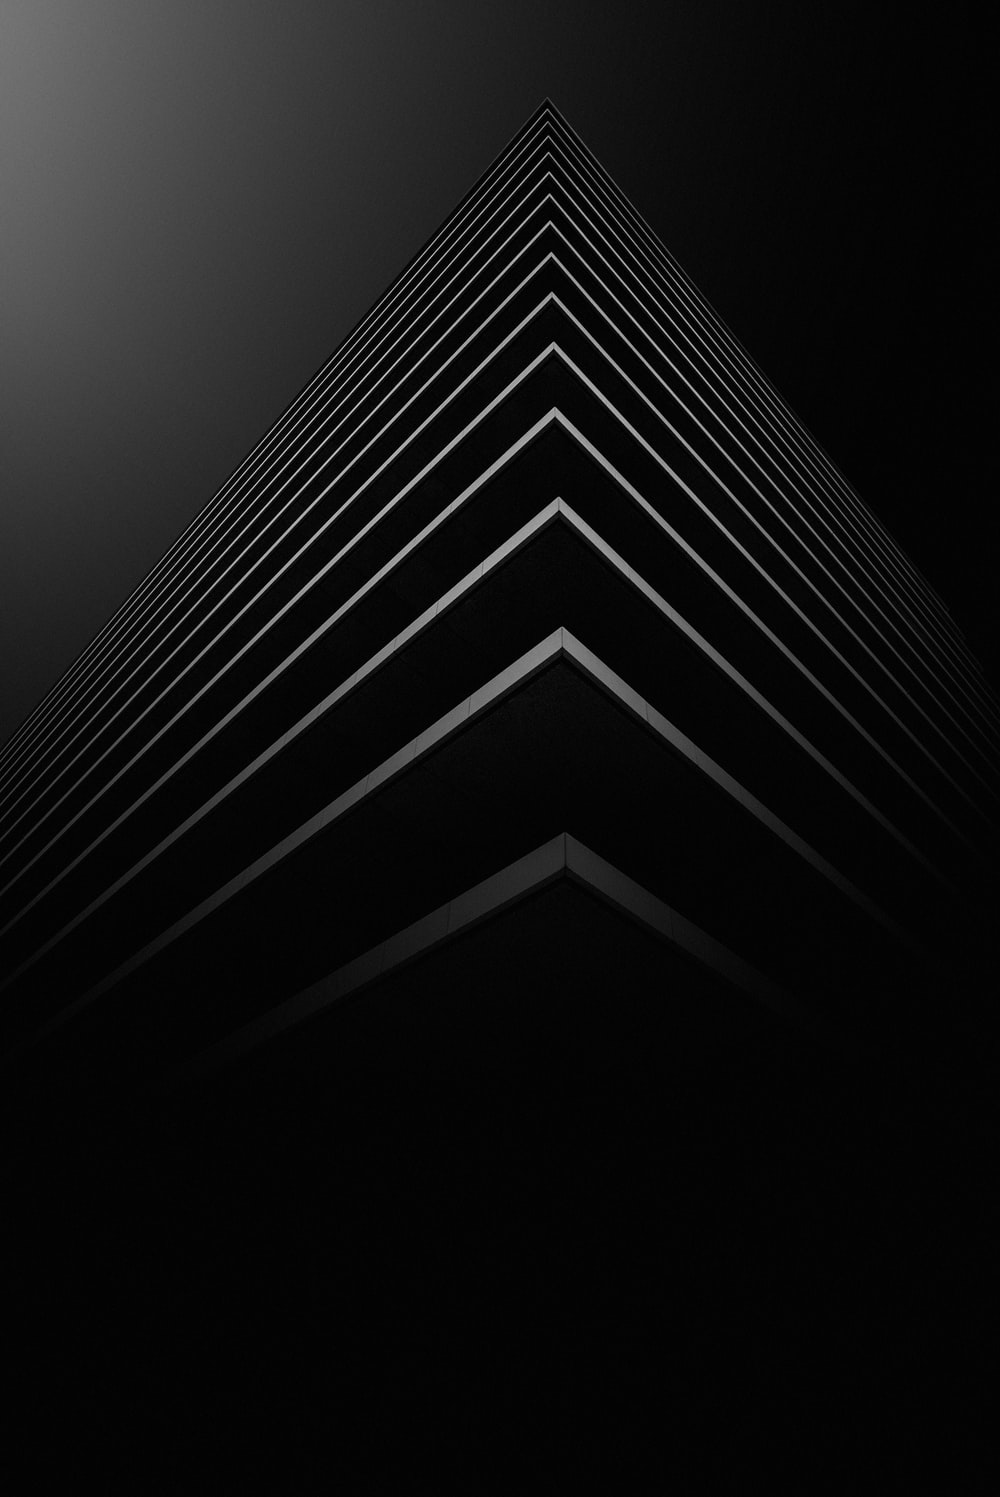 Abstract Dark Pictures Download Free Images On Unsplash